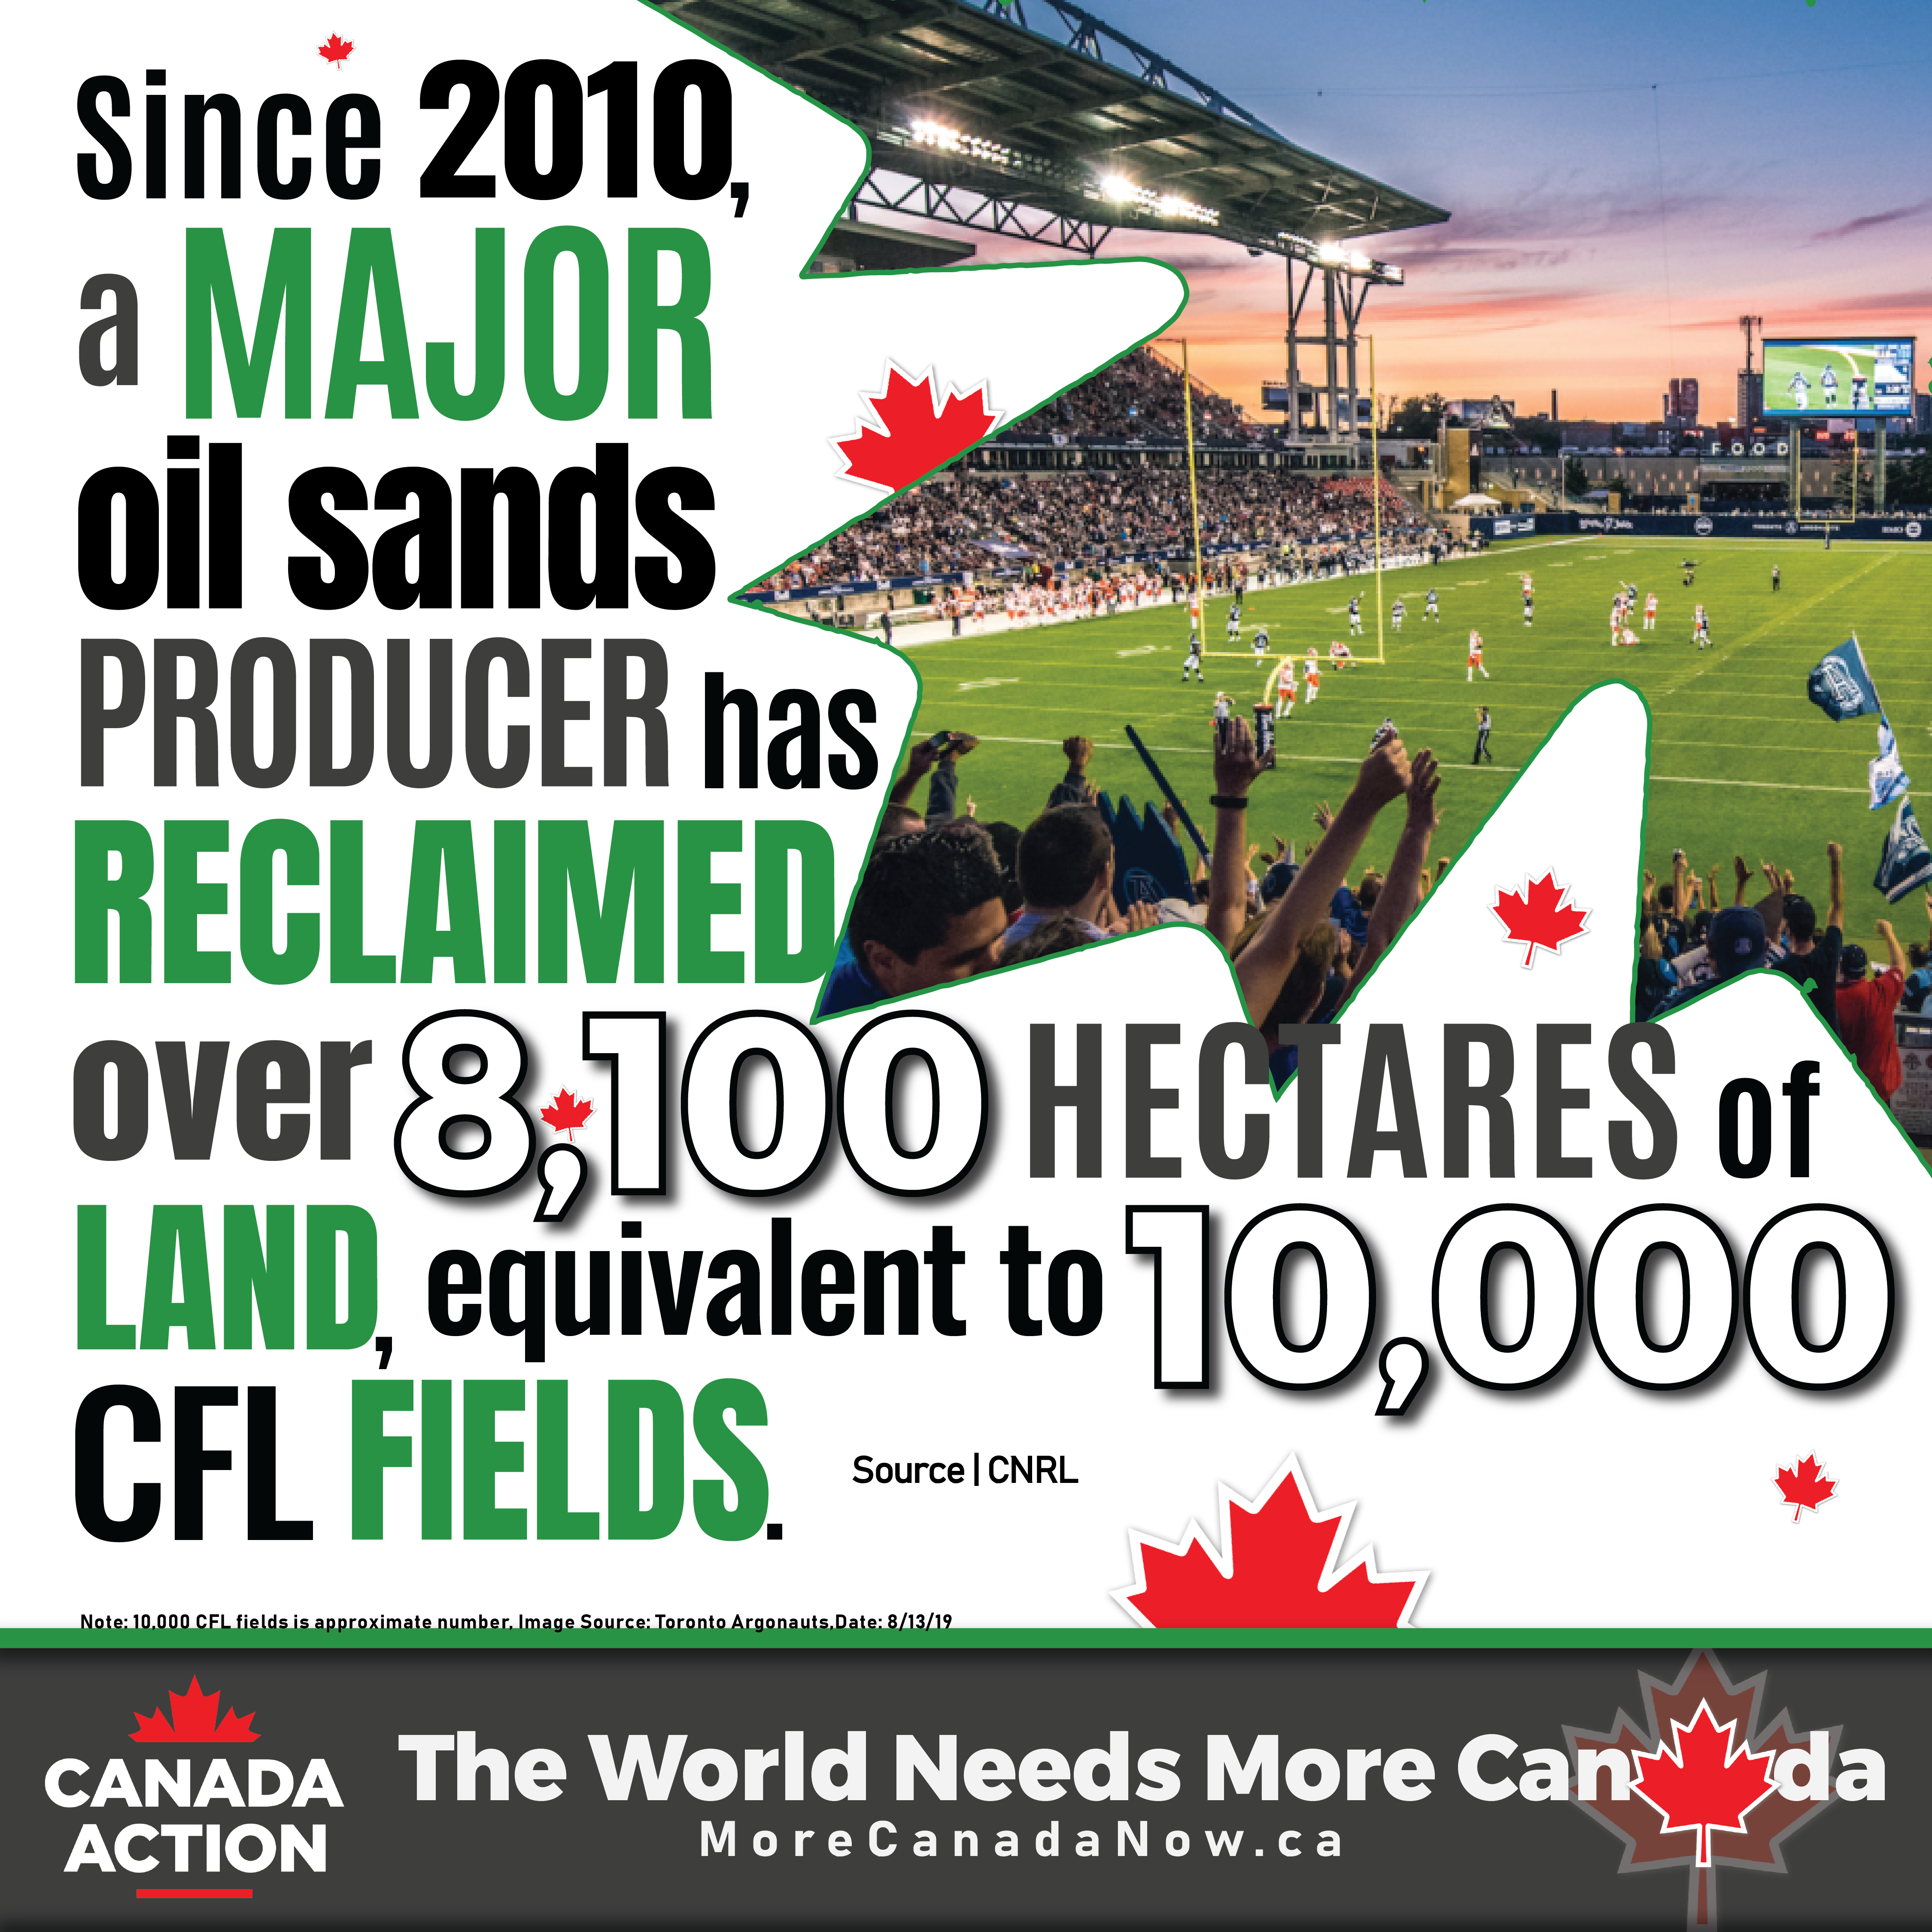 Since 2010, a major oil sands producer reclaimed over 8,100 hectares of land